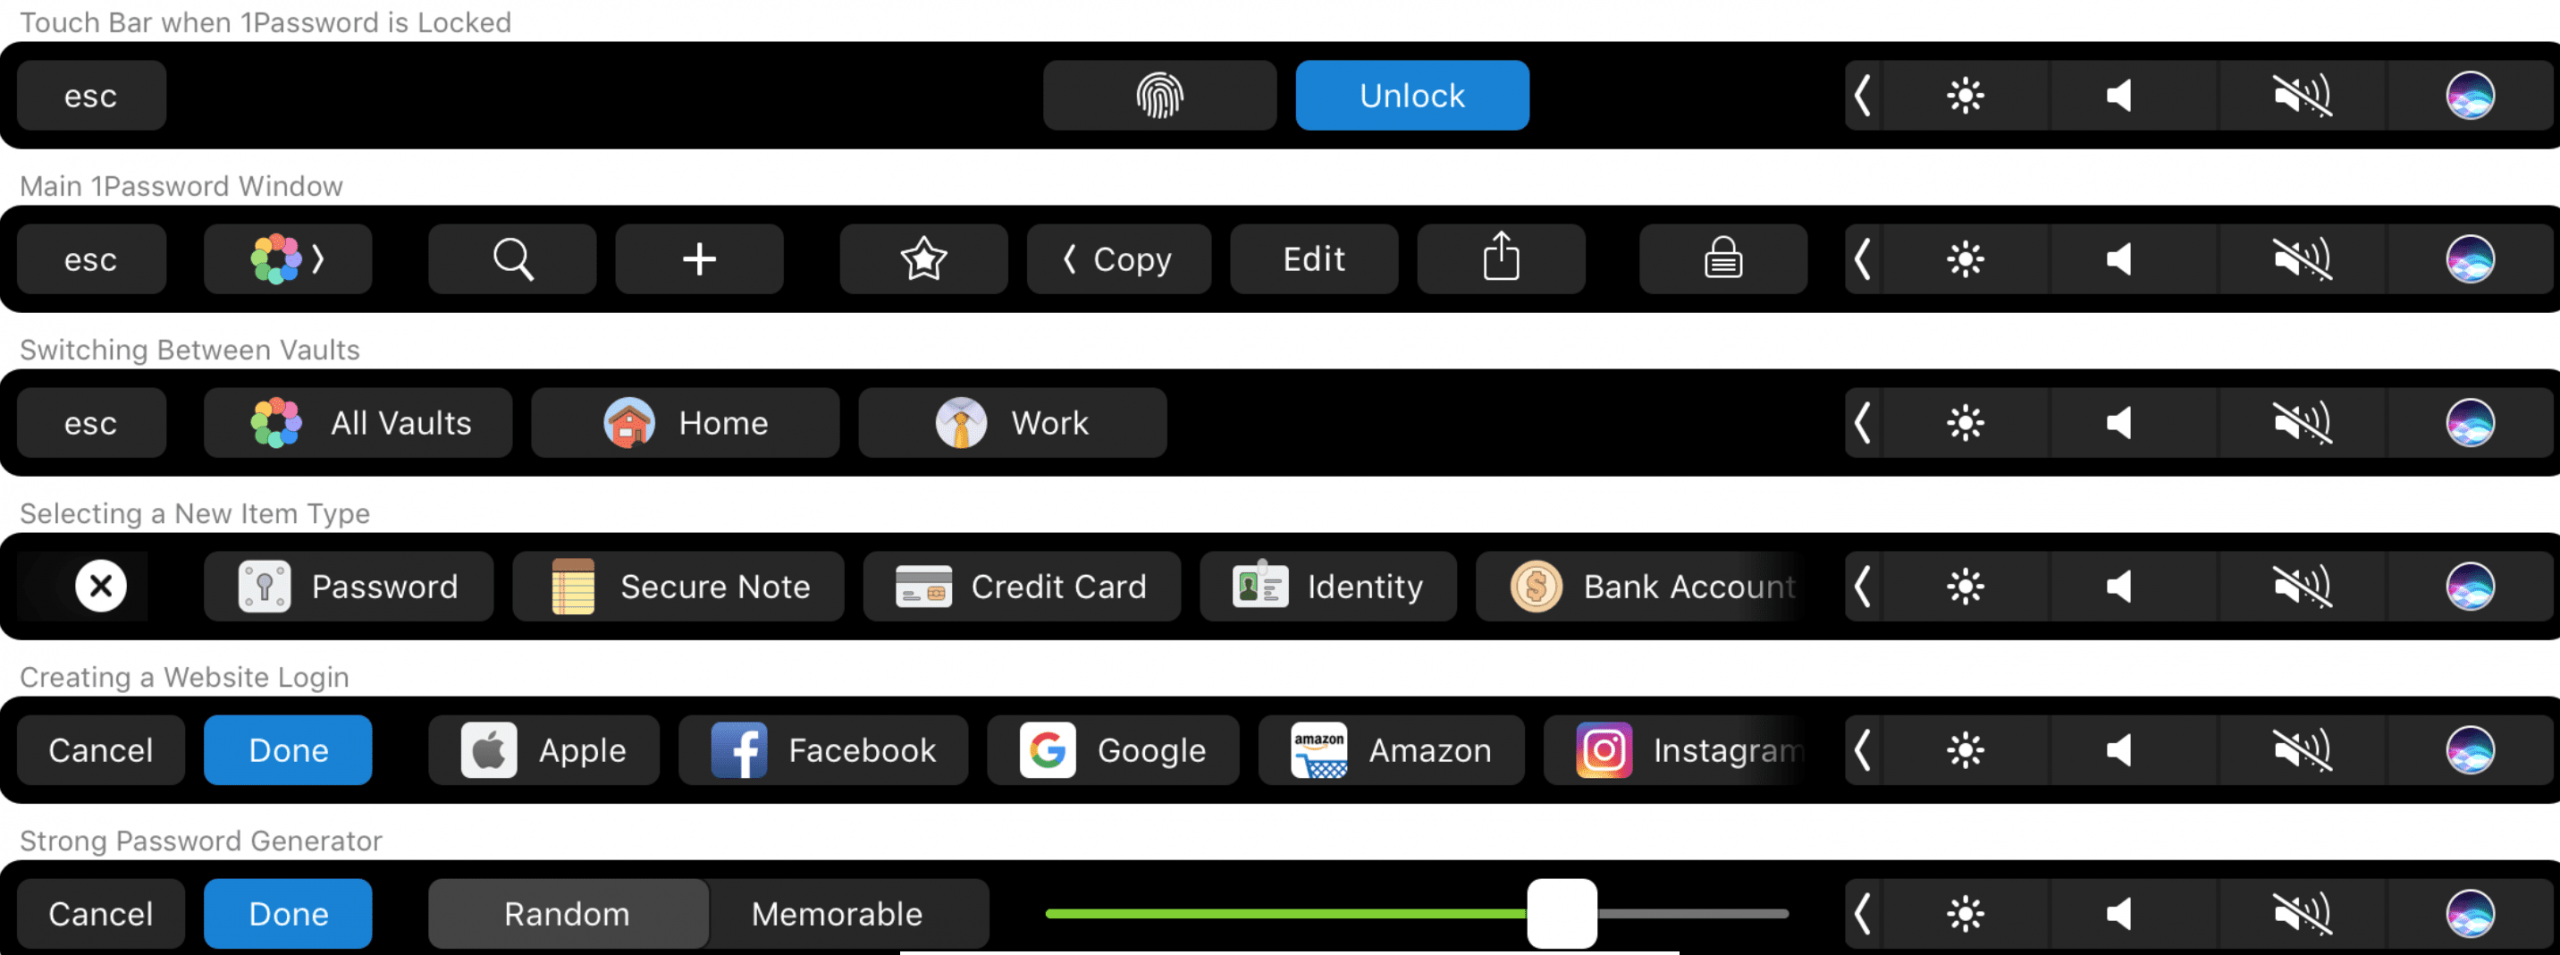 touch-bar-combo-top